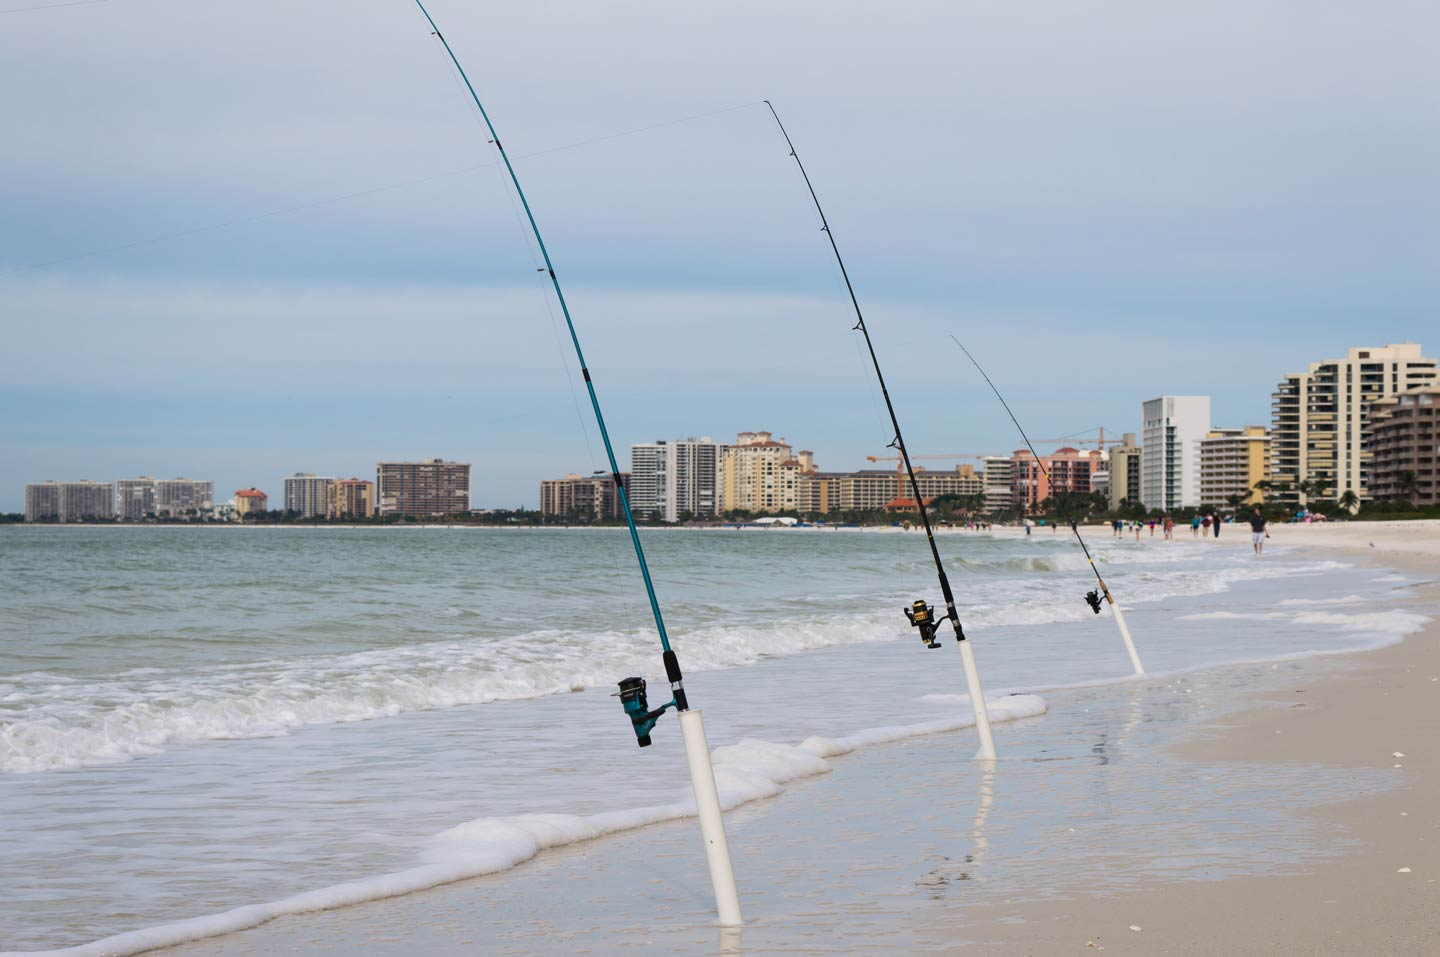 Three fishing rods are lined up along Marco Island's Gulf-facing shoreline, with the sand and the ocean in view